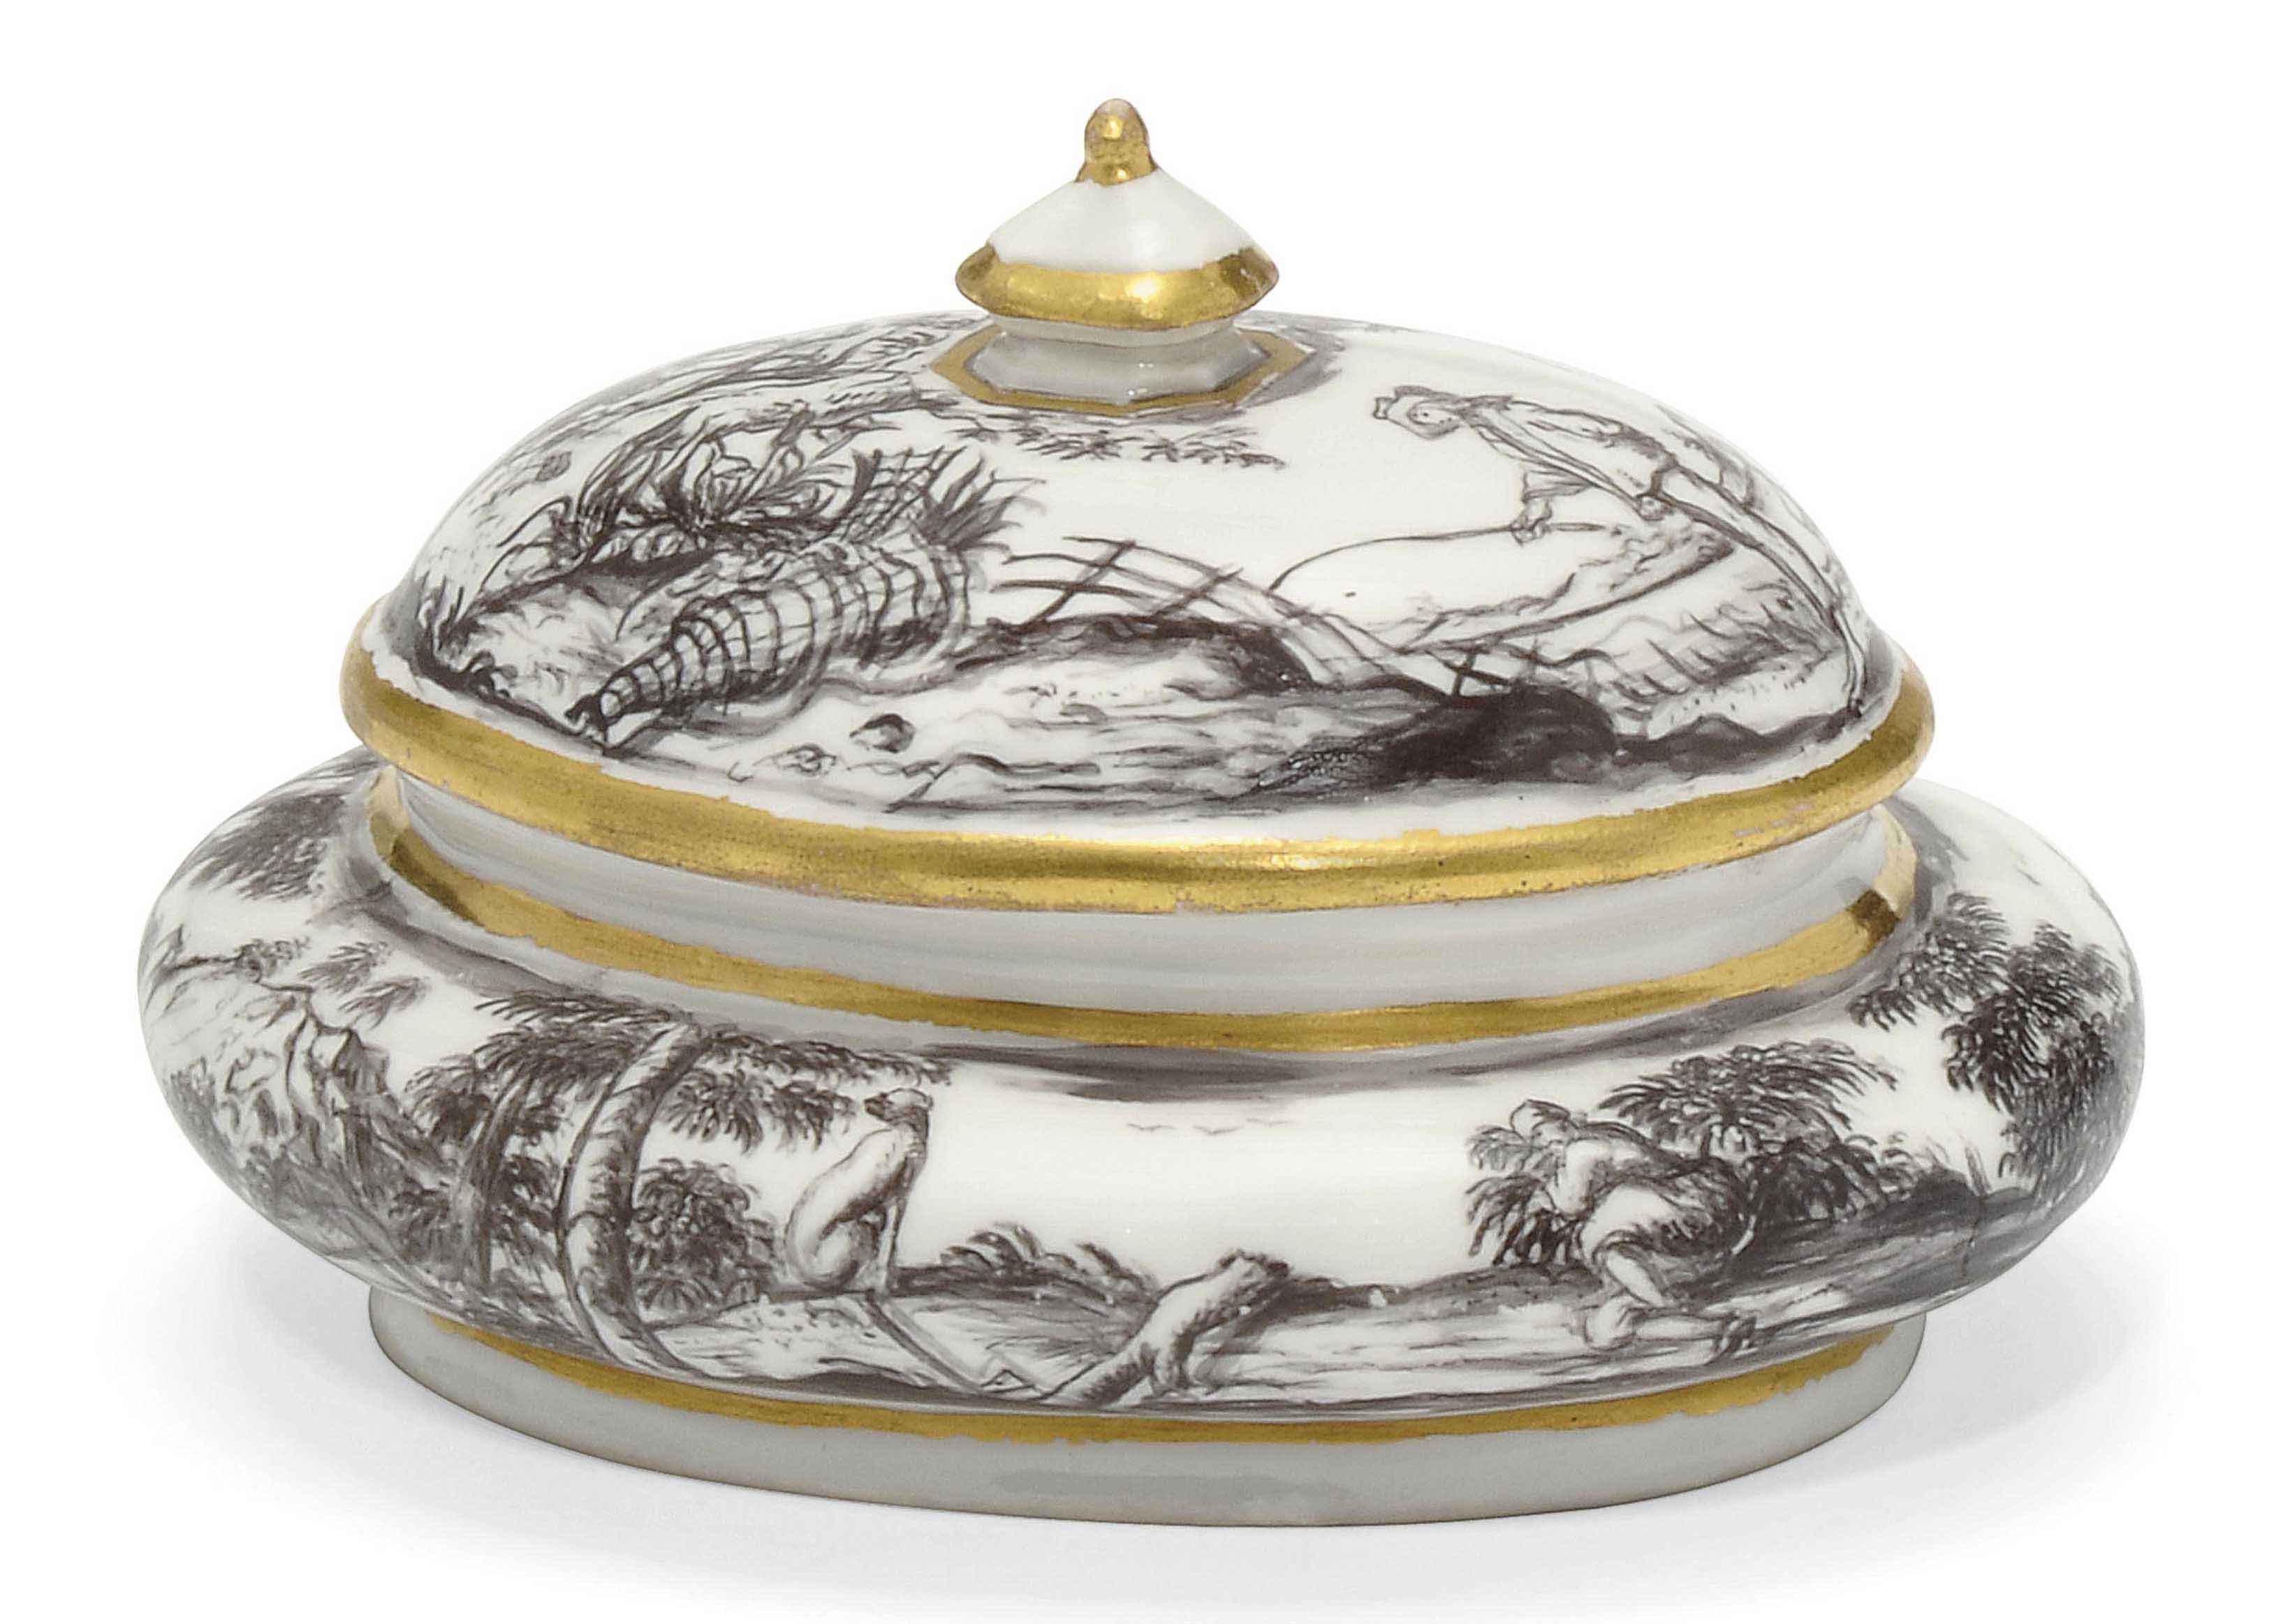 A VIENNA (DU PAQUIER) OVAL SUGAR-BOX AND COVER